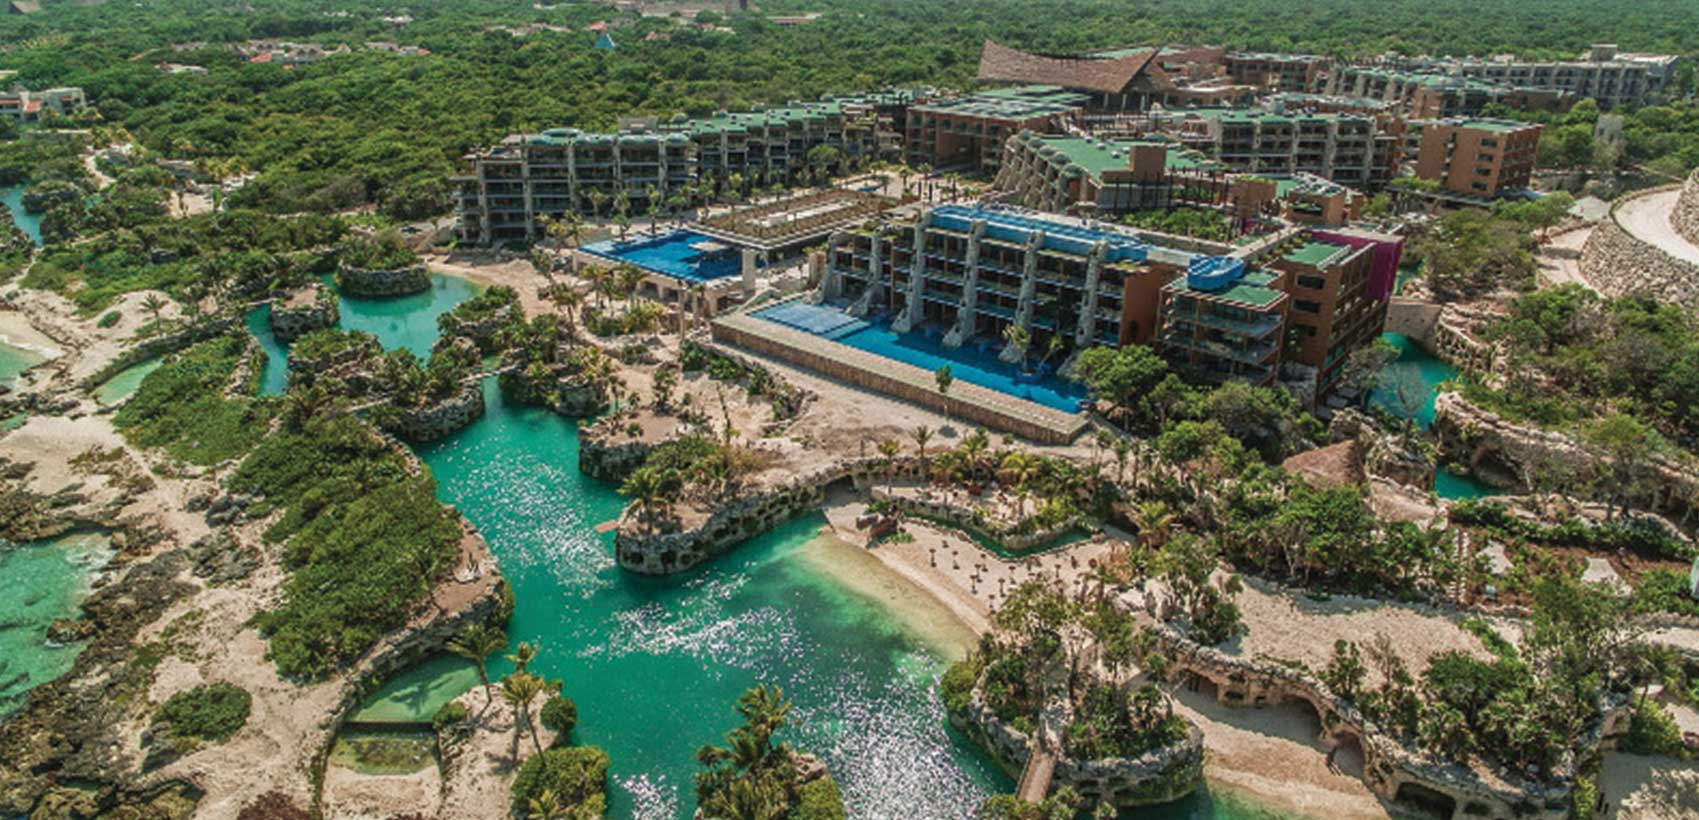 Experience Hotel Xcaret Mexico with Transat Family Collection 3